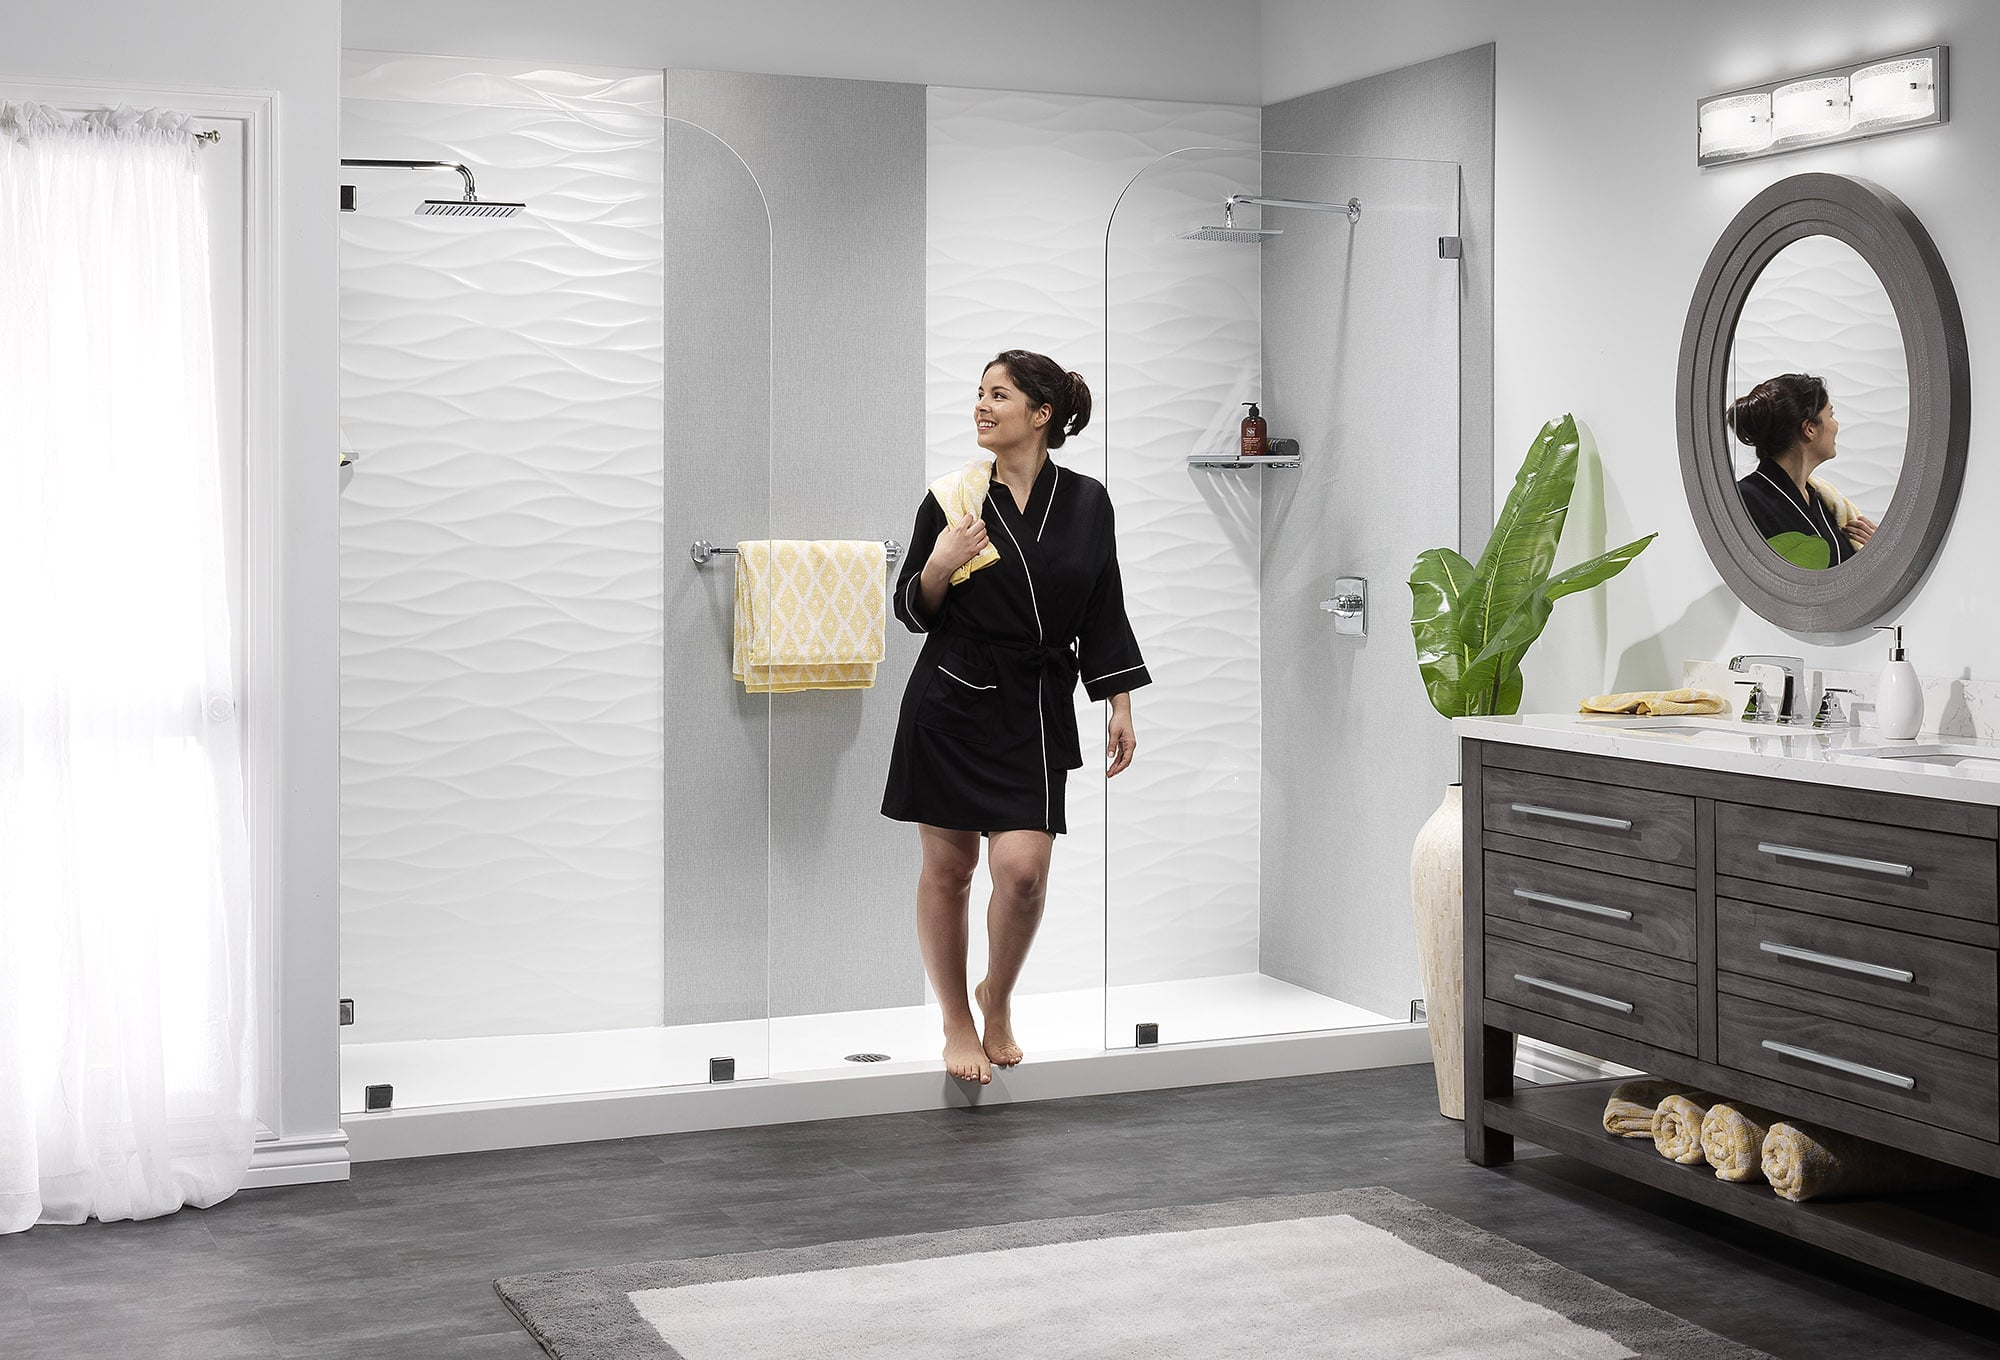 South Florida Shower Replacement - Bathrooms Plus Inc (10)